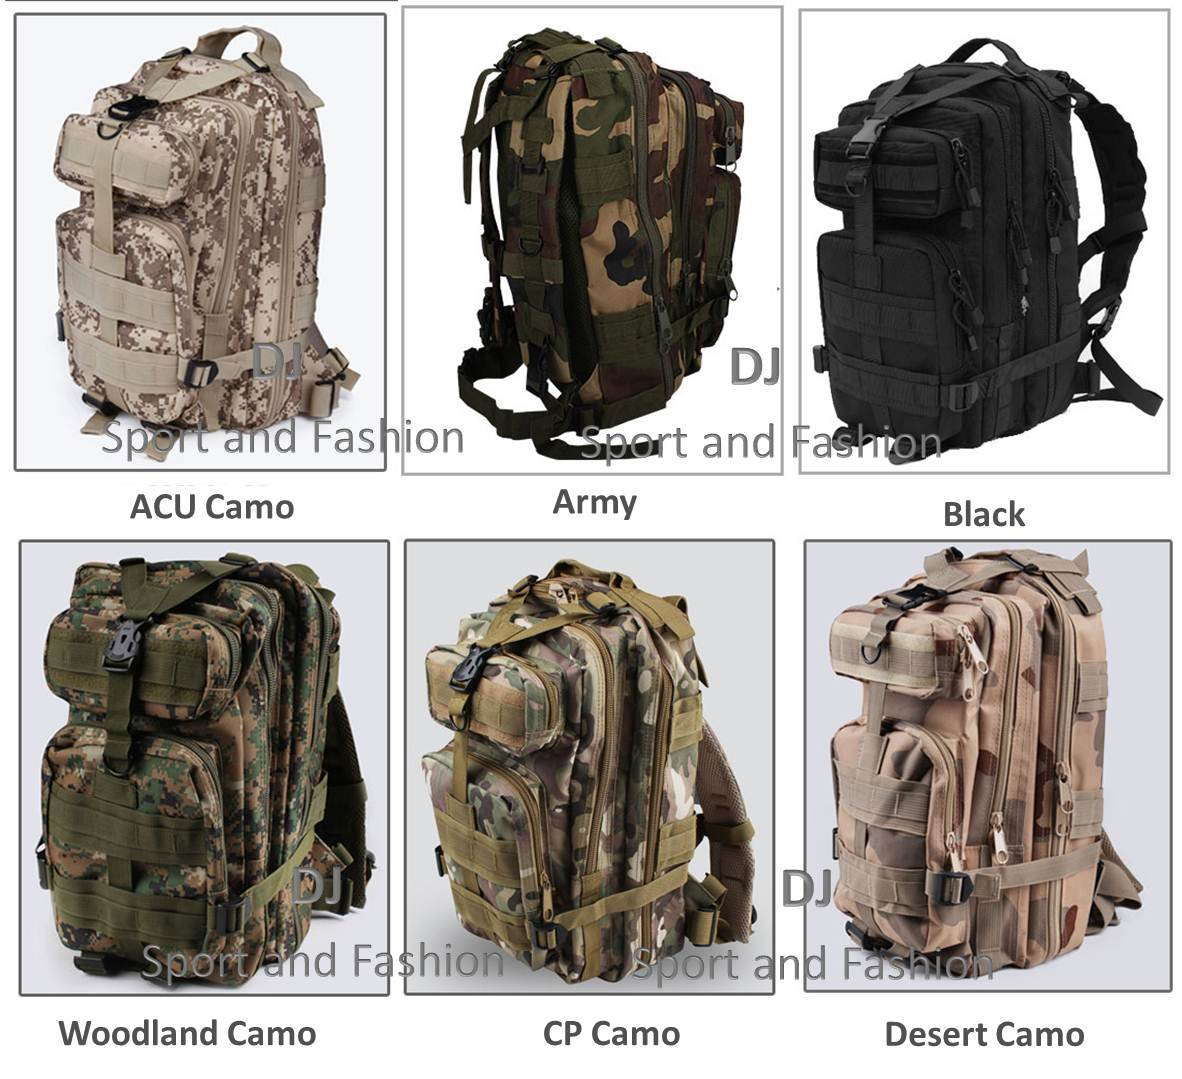 24l Army Bags - Overall_Amazing 24l Army Bags - Overall  Picture_647215.jpg